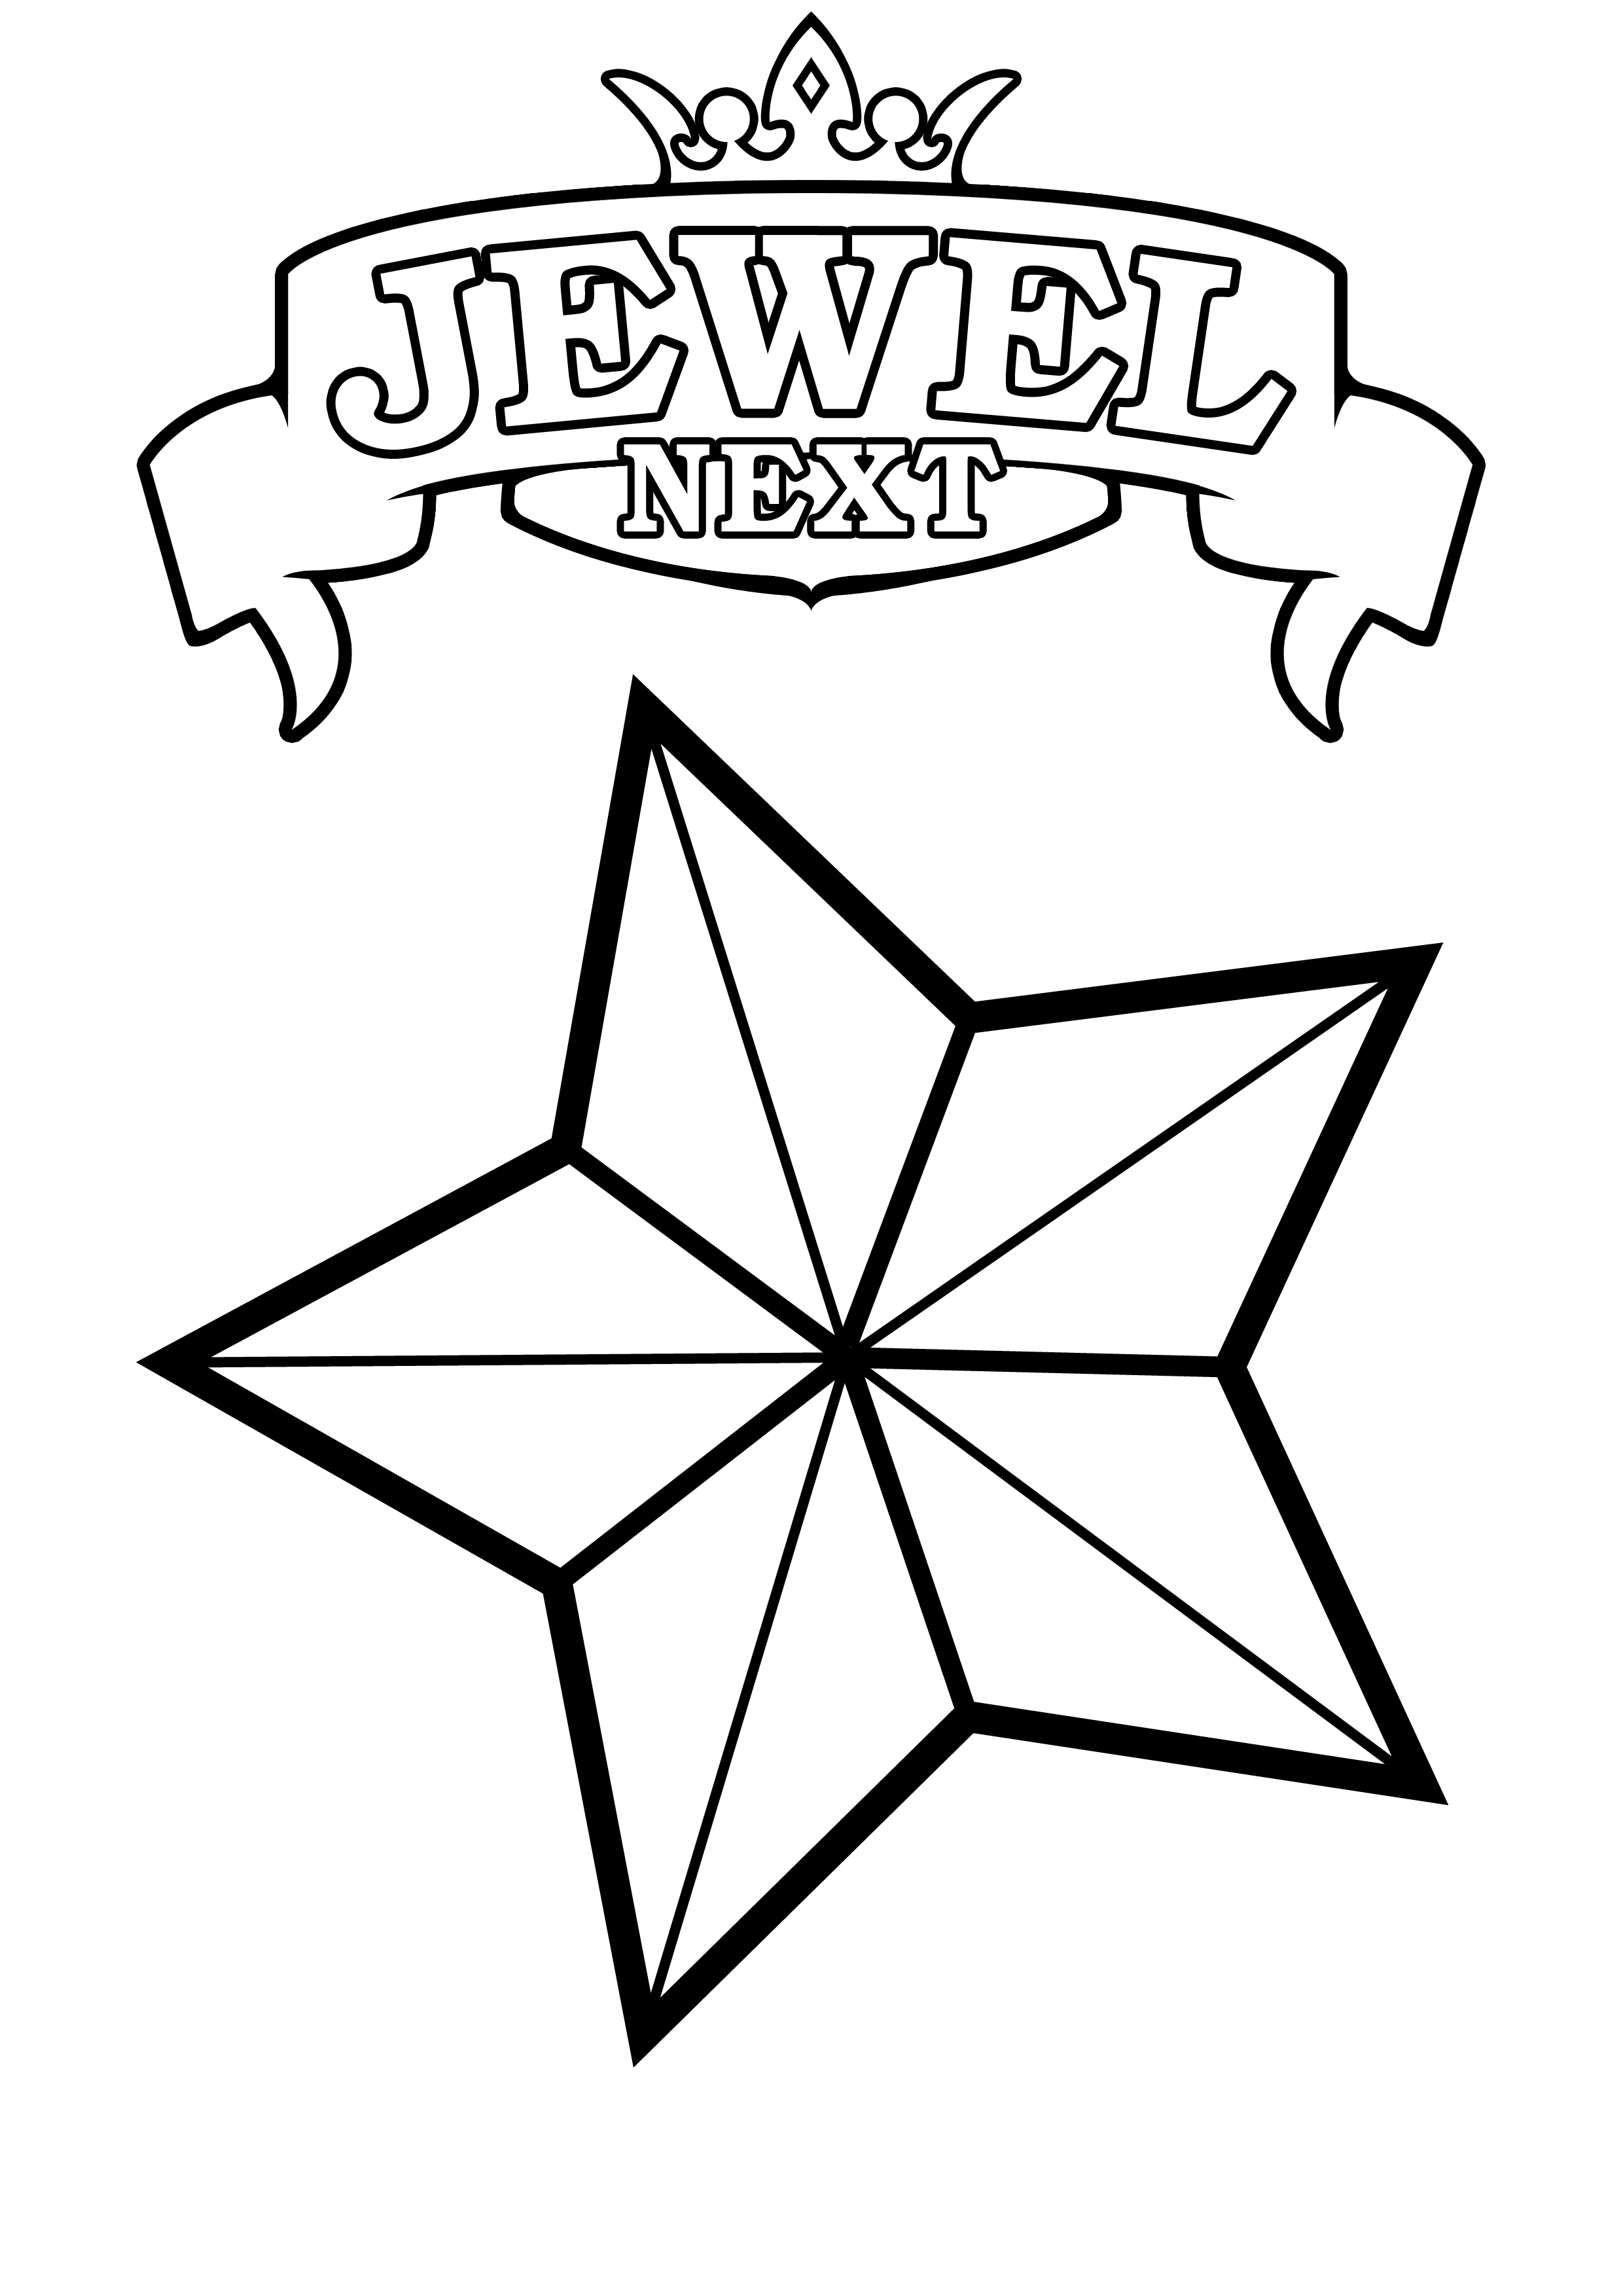 printable pictures of stars free printable star coloring pages for kids pictures stars printable of